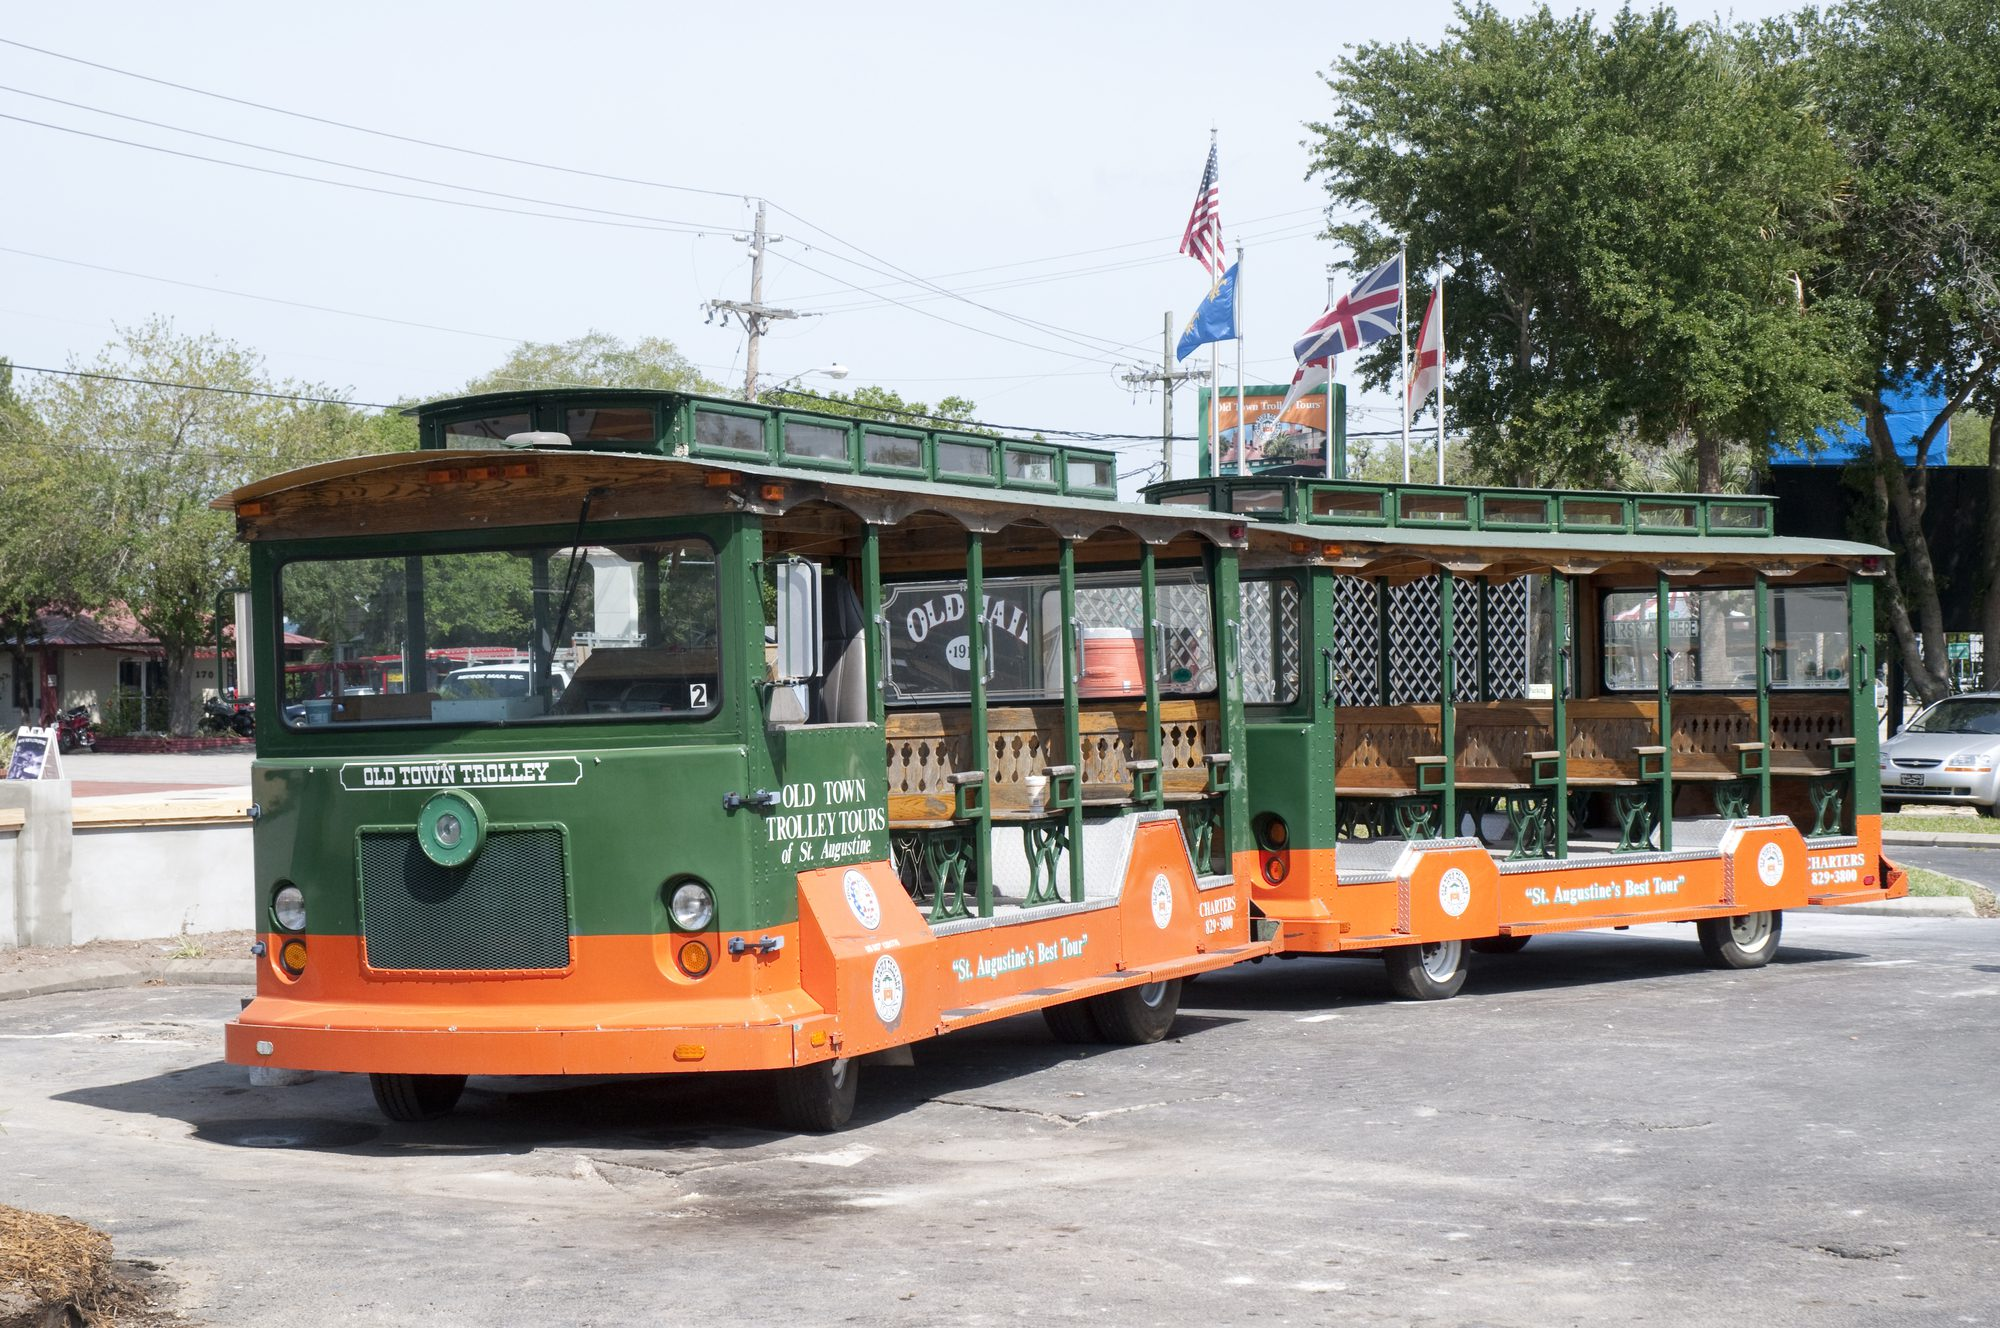 Cap off the rehearsal dinner with a trolley tour around St. Augustine.